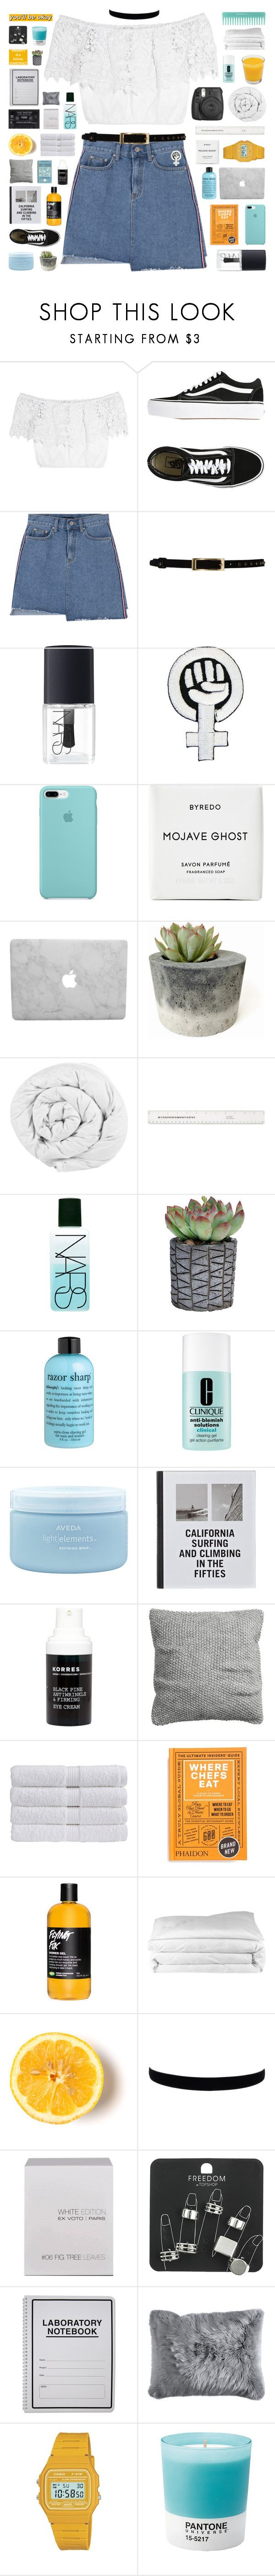 """""""i found me a better lover in the uk"""" by nothing-like-outerspace ❤ liked on Polyvore featuring Miguelina, Vans, Temperley London, NARS Cosmetics, Byredo, The Fine Bedding Company, Fujifilm, philosophy, Clinique and Aveda"""